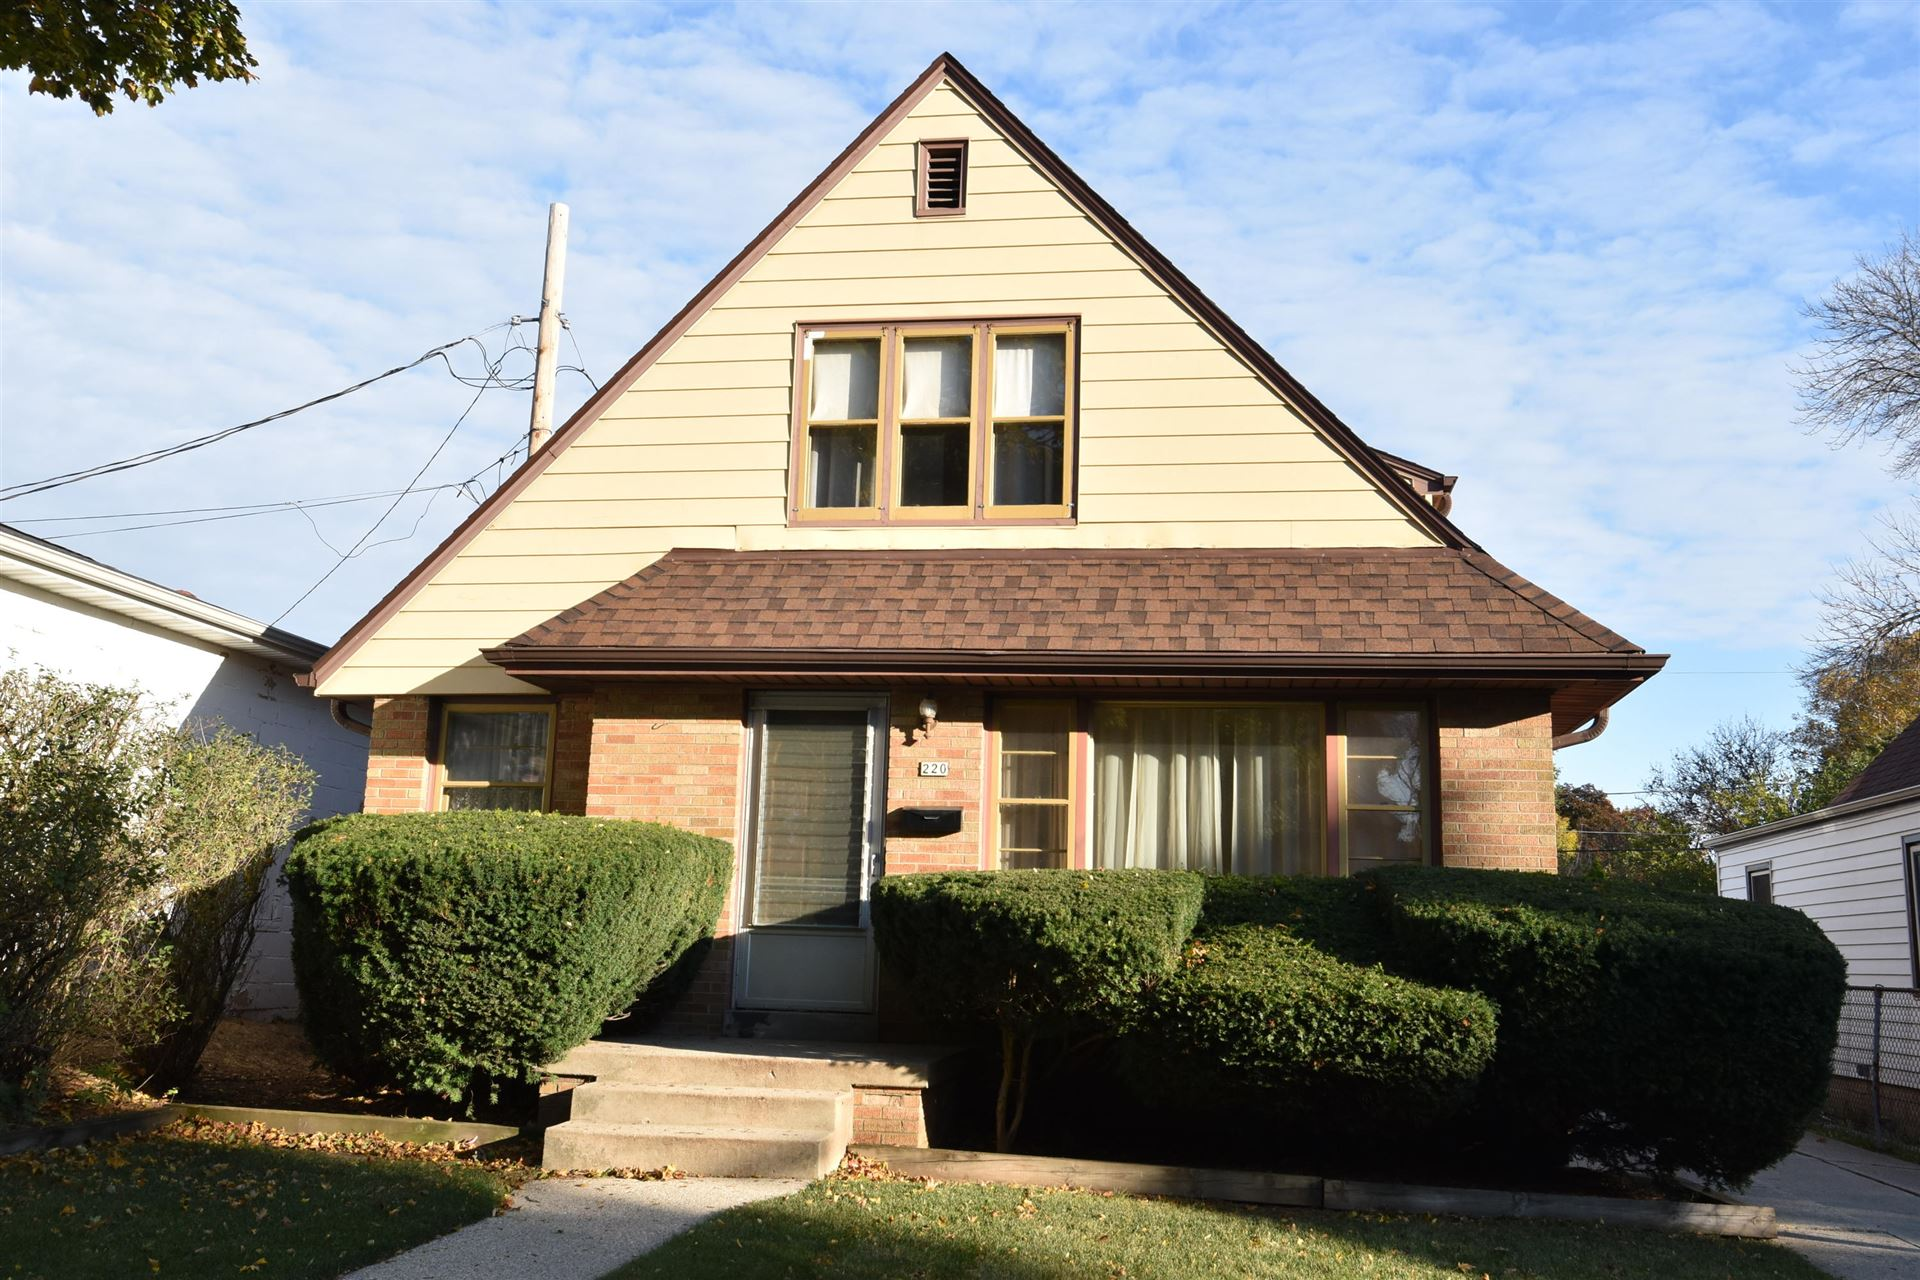 220 E Wilbur Ave #220A, Milwaukee, WI 53207 - #: 1715147